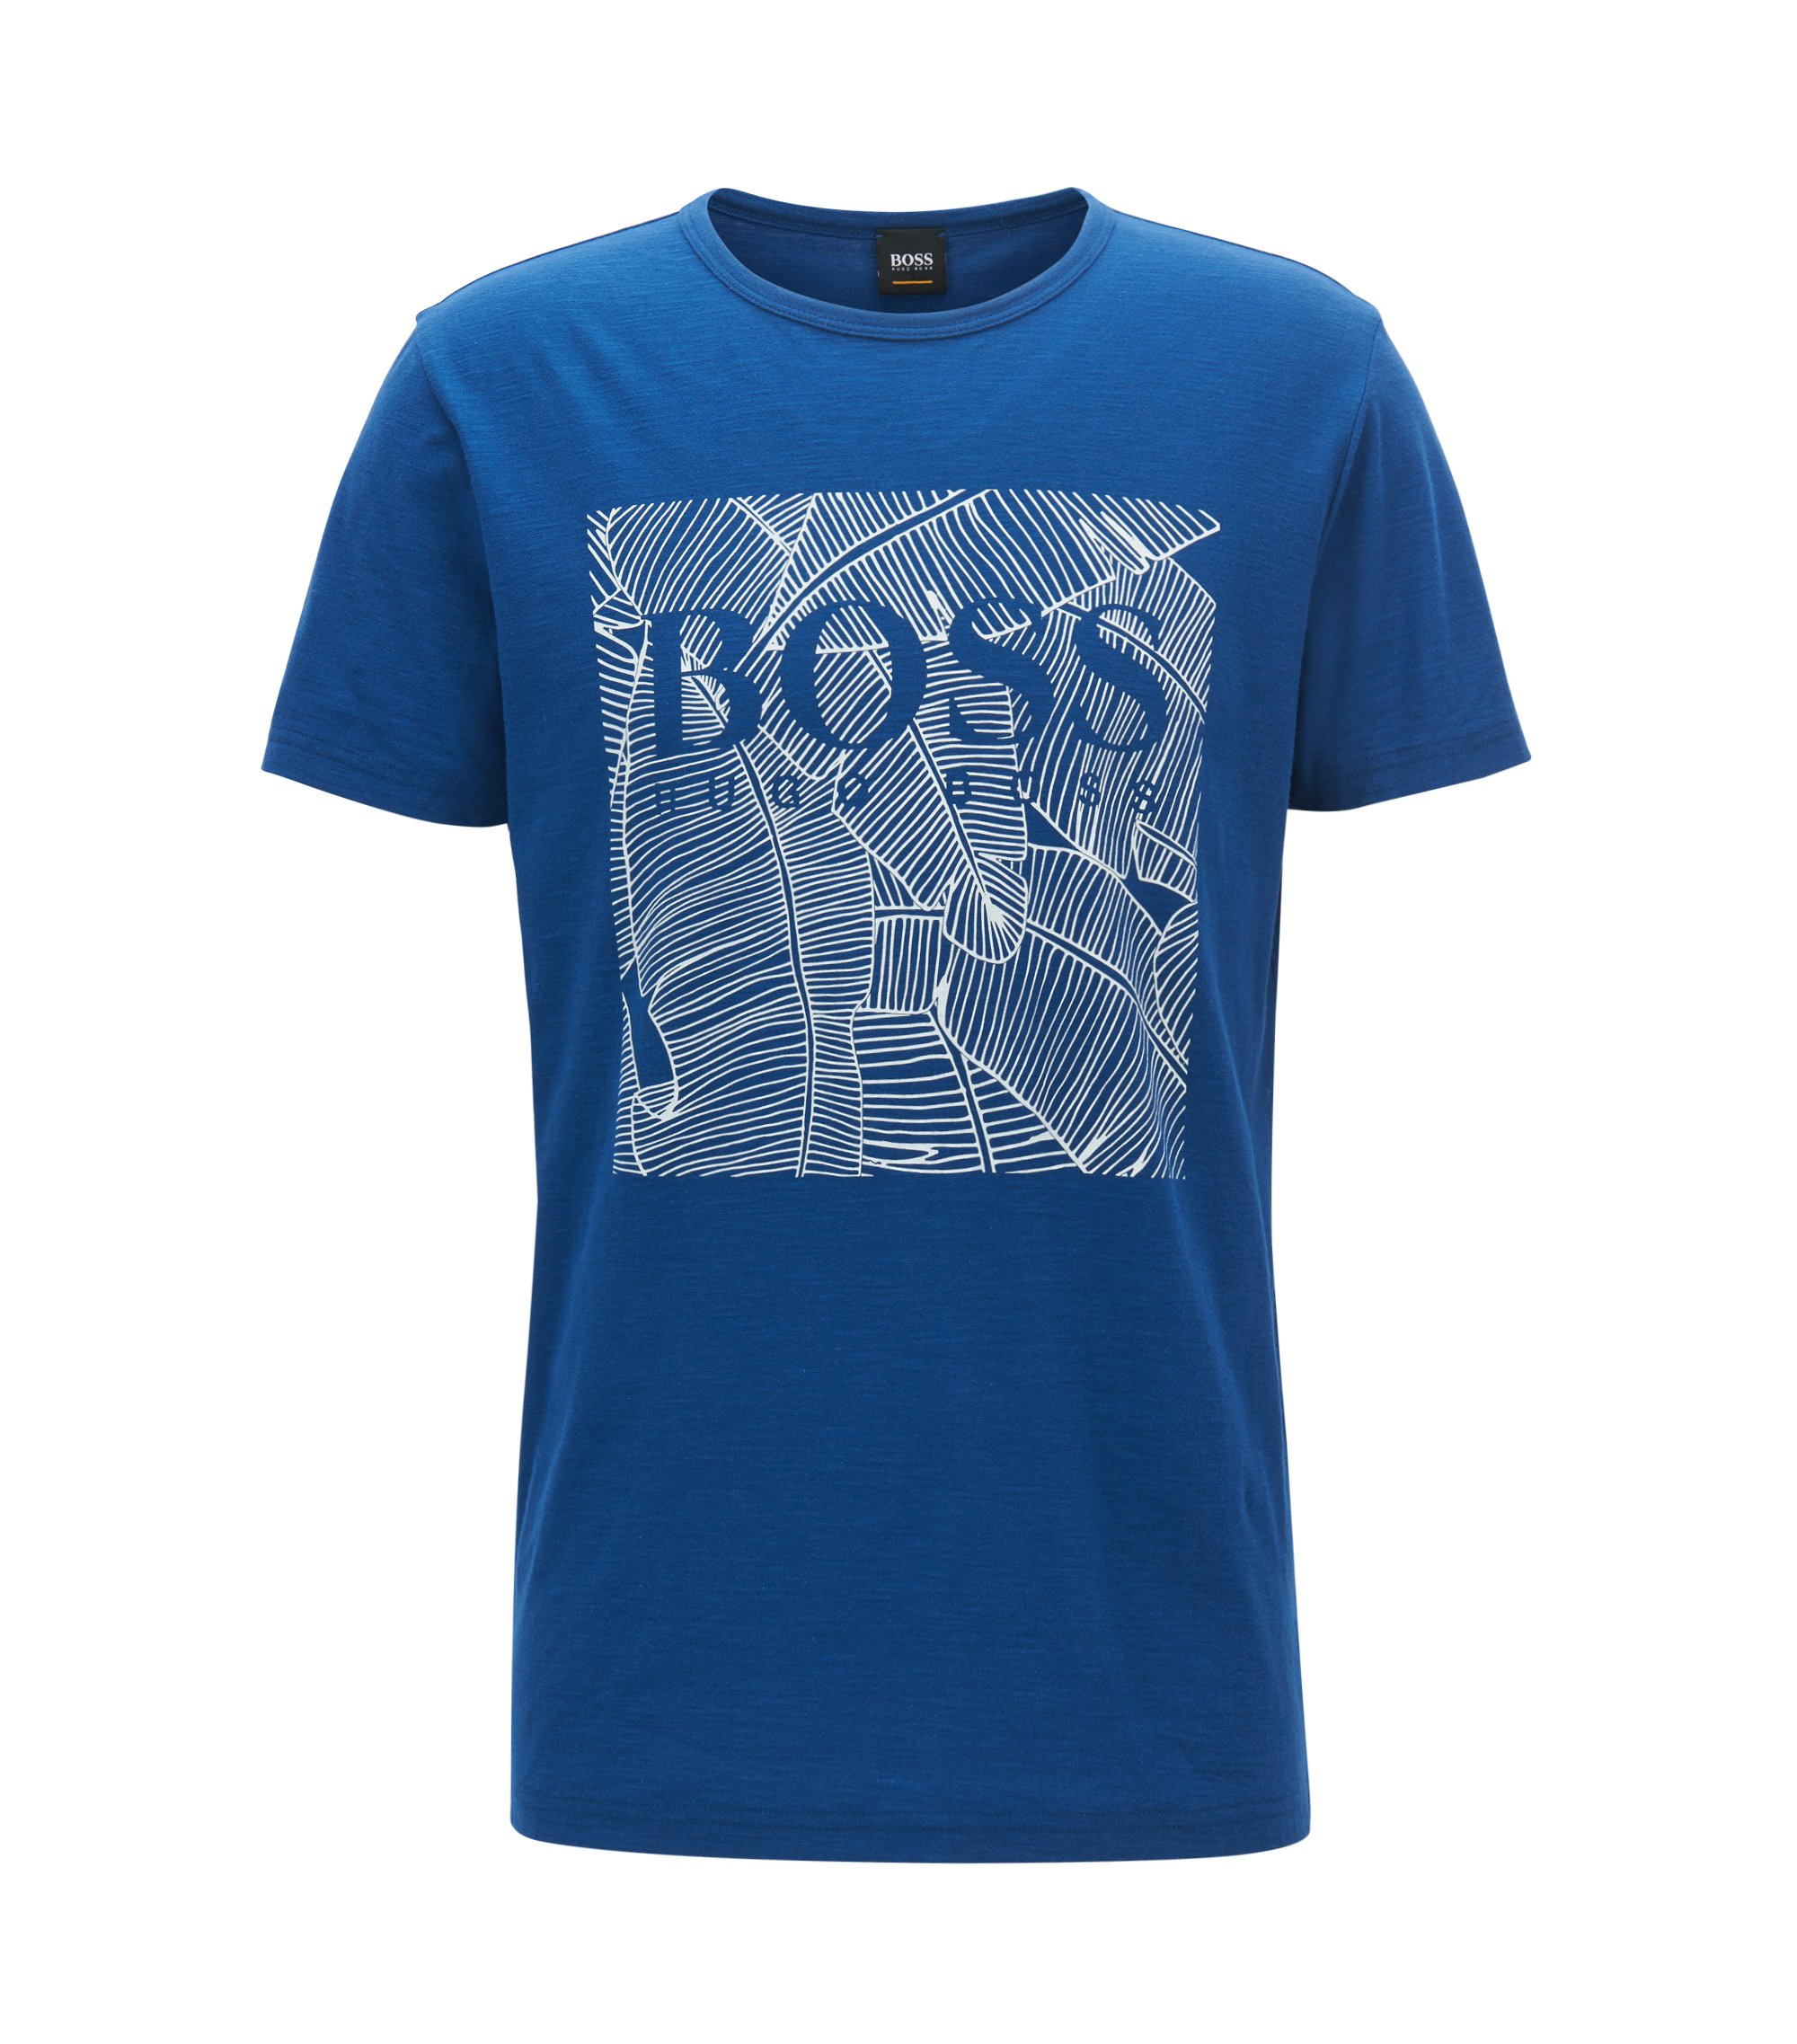 Relaxed-fit graphic T-shirt in slub cotton, Blue